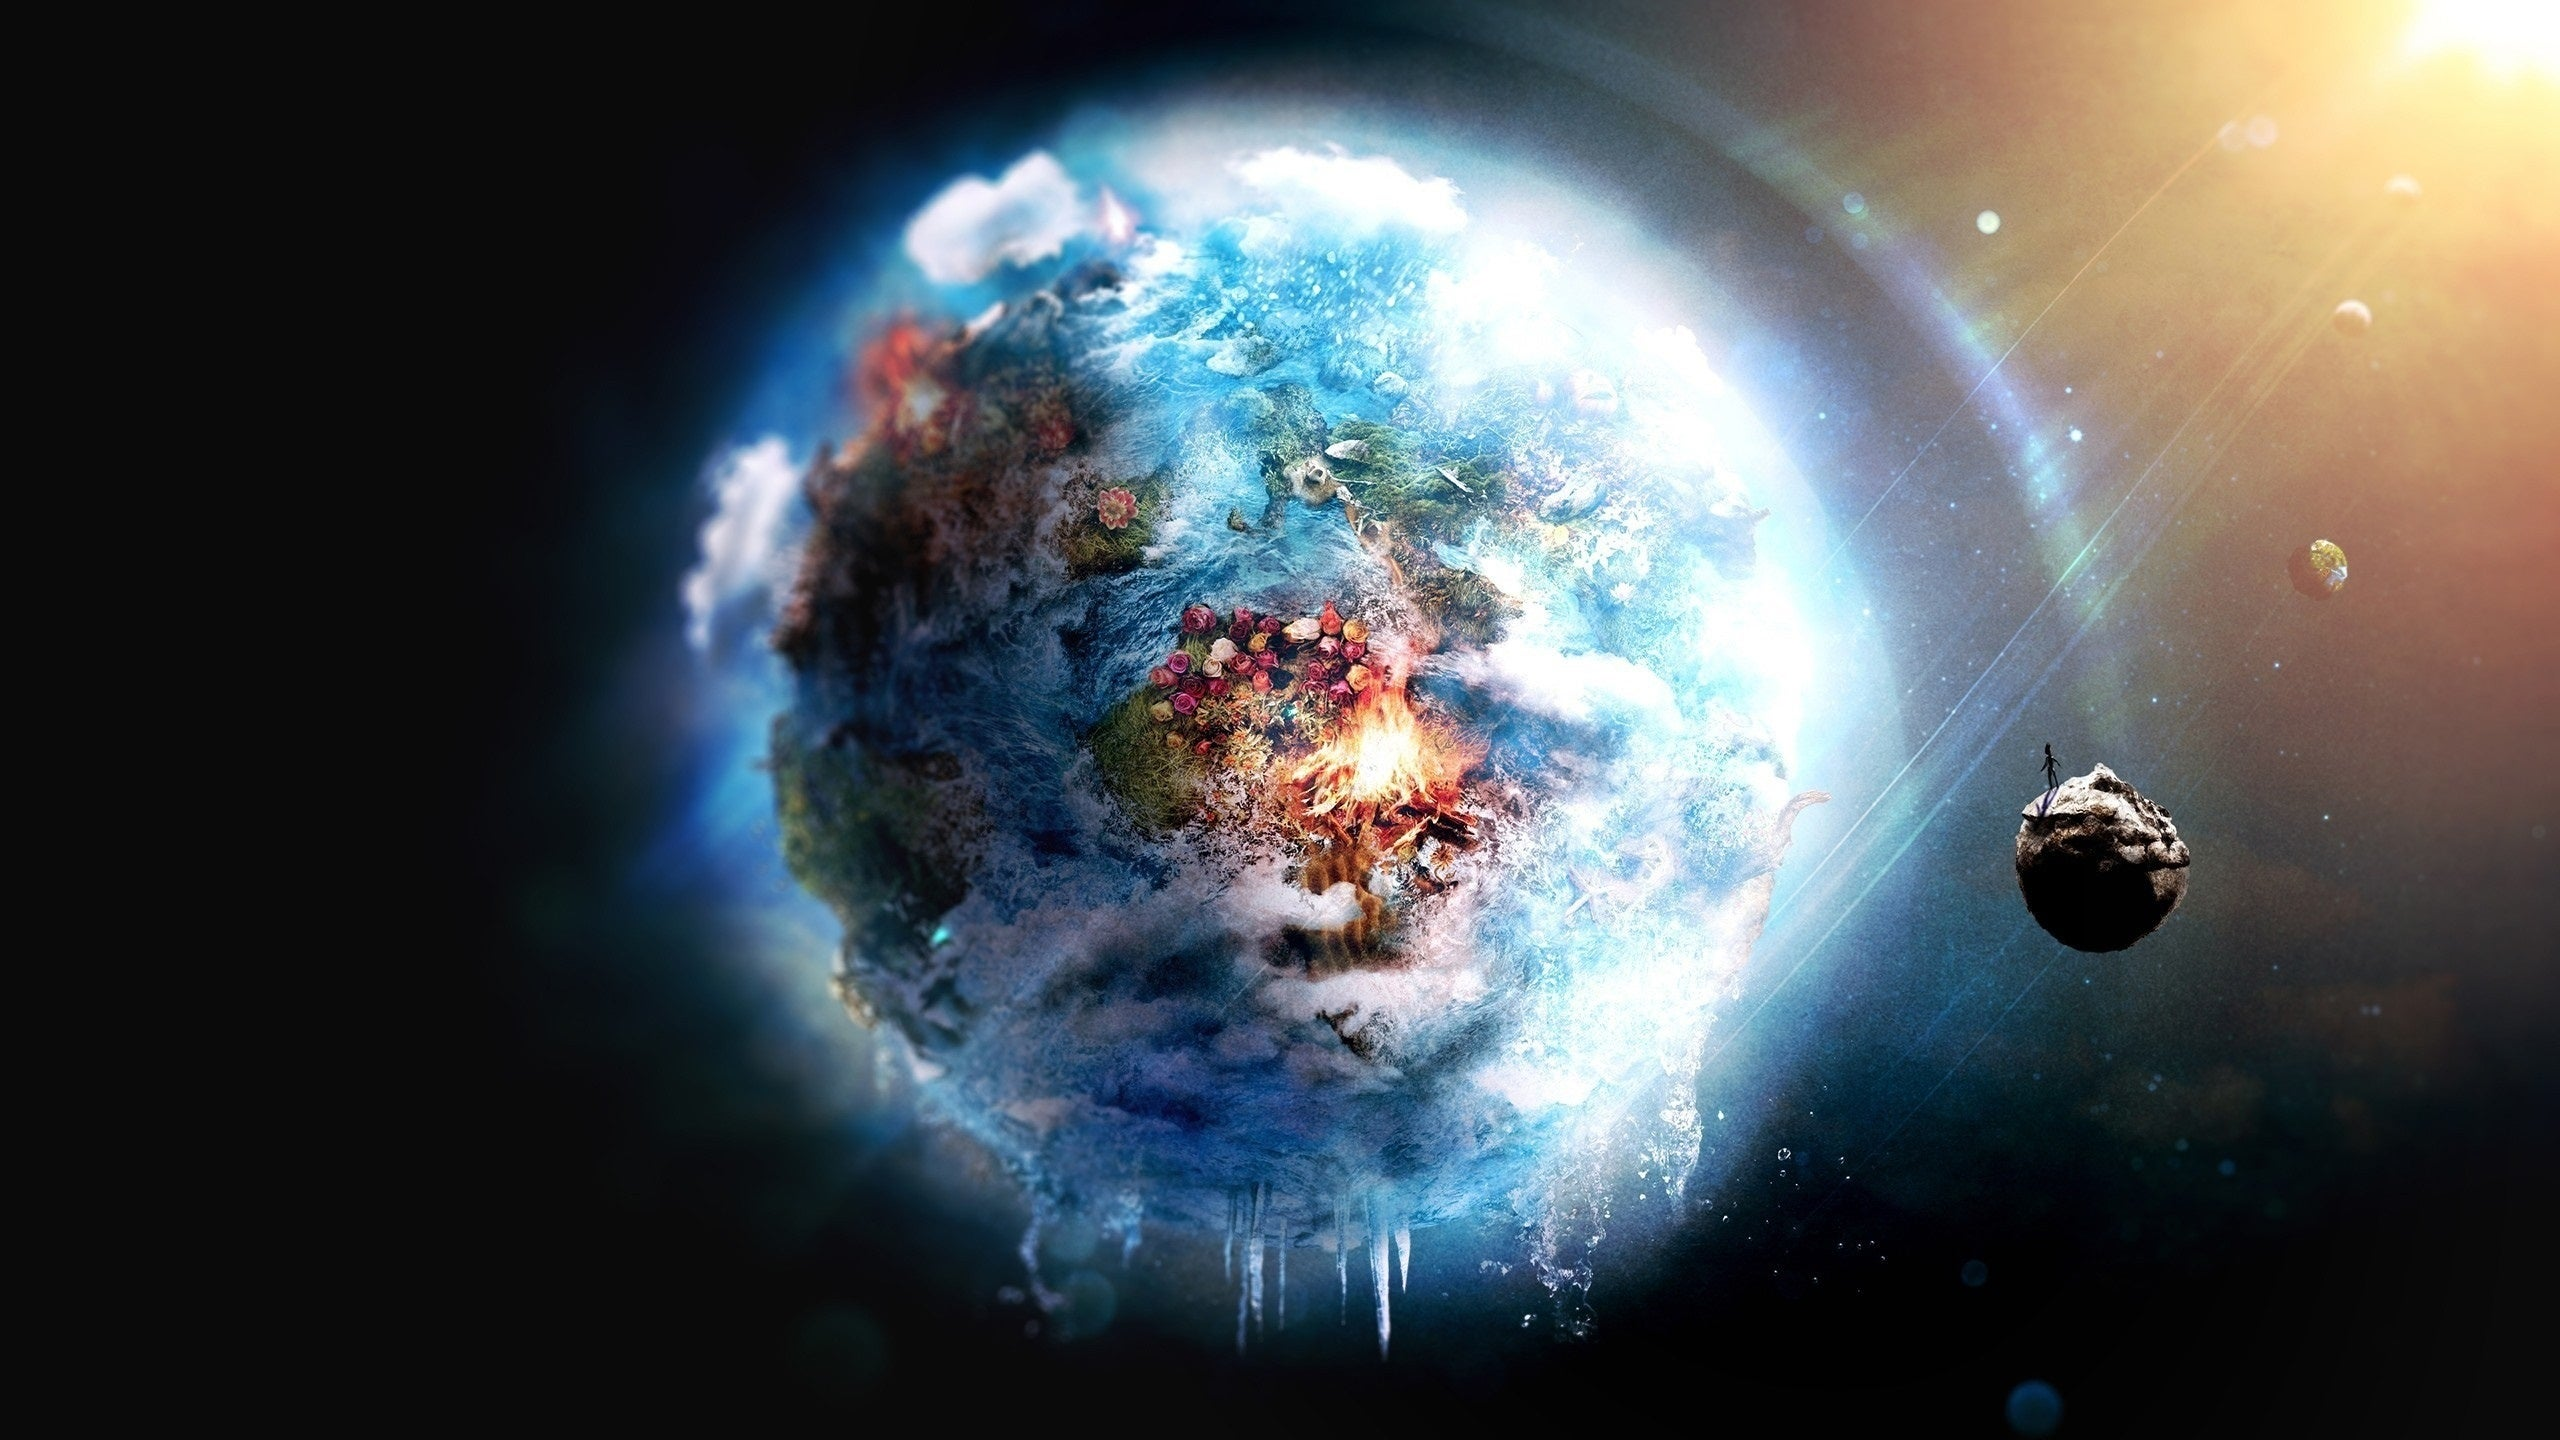 Earth 4k Wallpapers For Your Desktop Or Mobile Screen Free